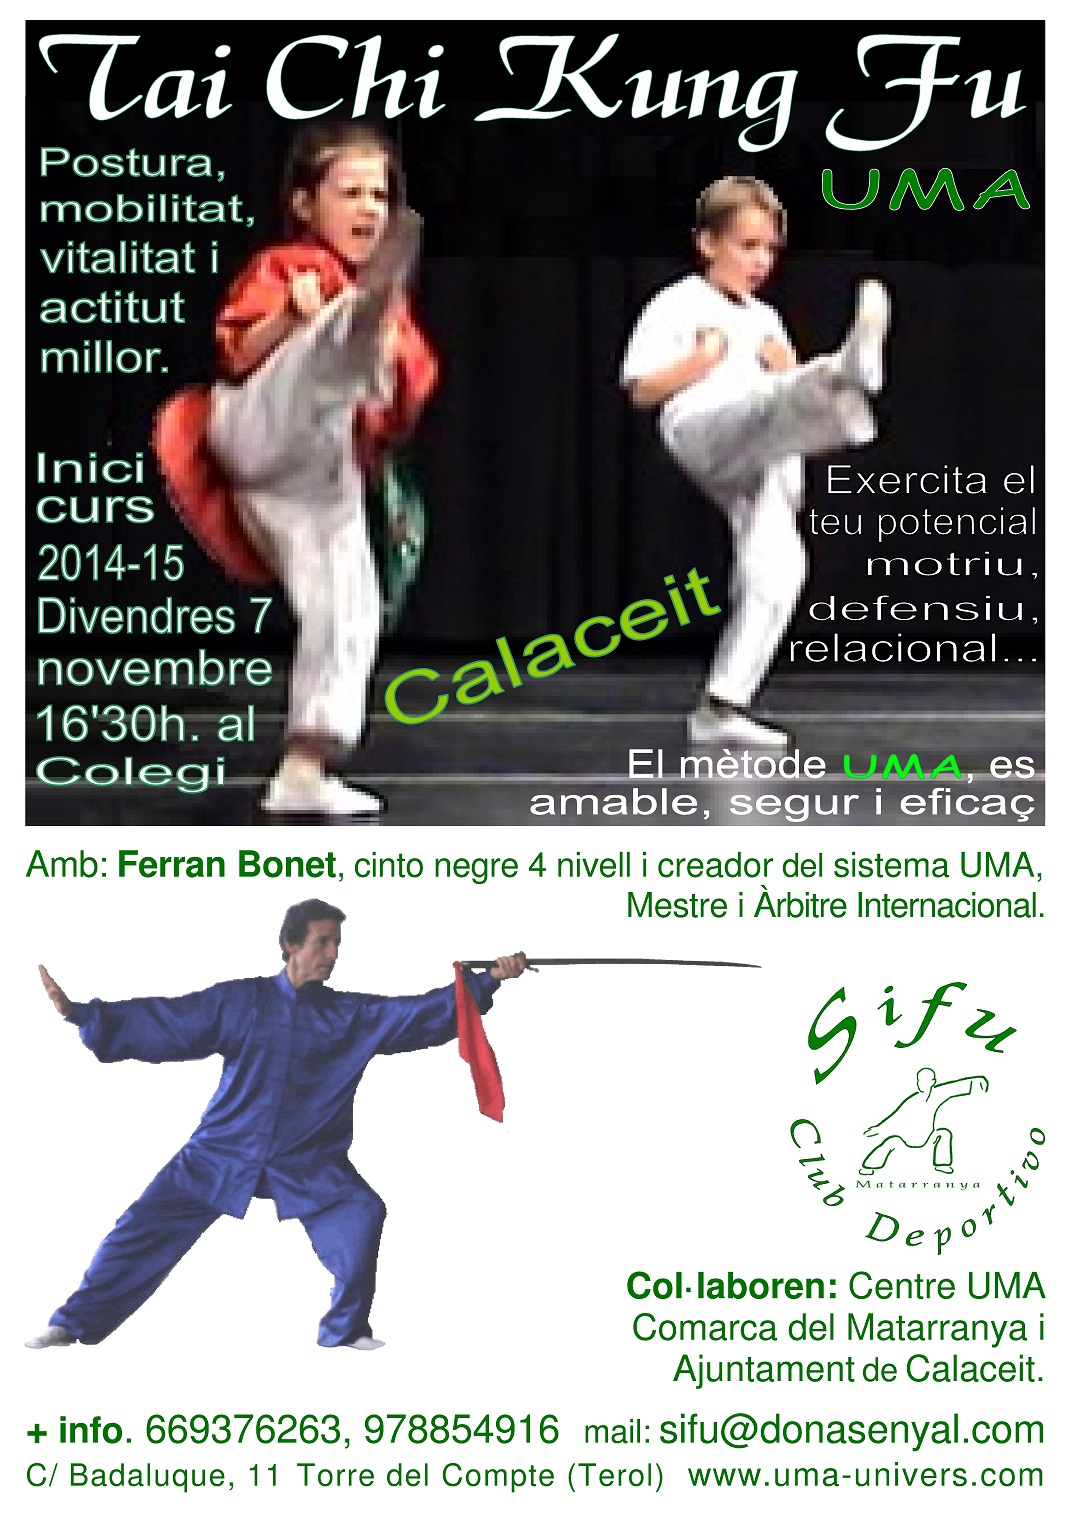 INICI CLASSES KUNG FU UMA CALACEIT 2014-15 X FACEBOOK